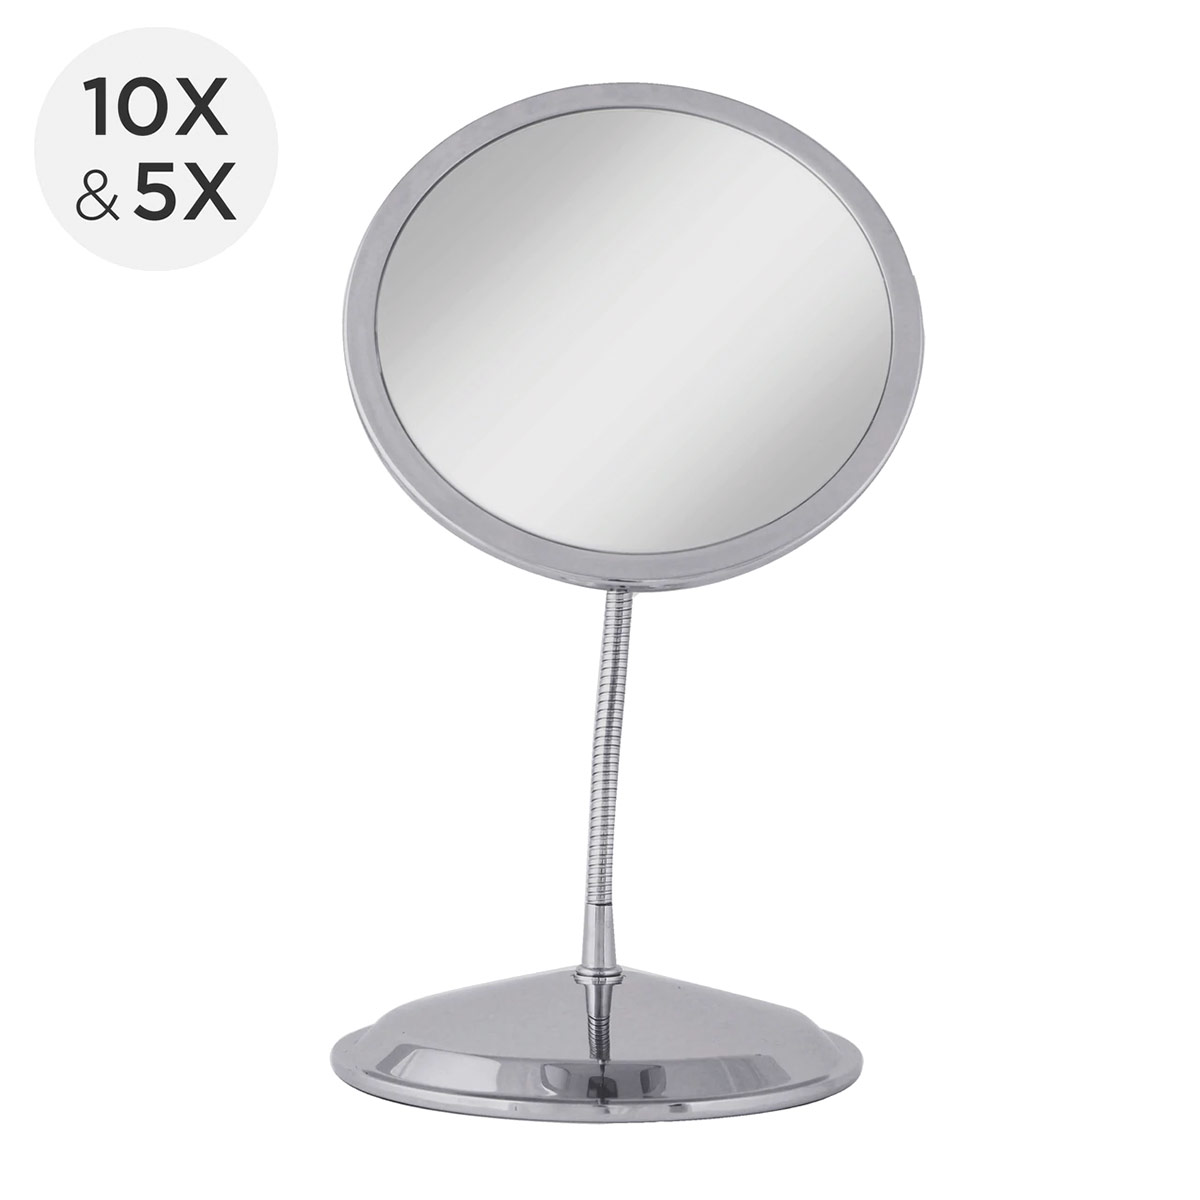 Zadro Double Vision Vanity and Suction Cup Mirror